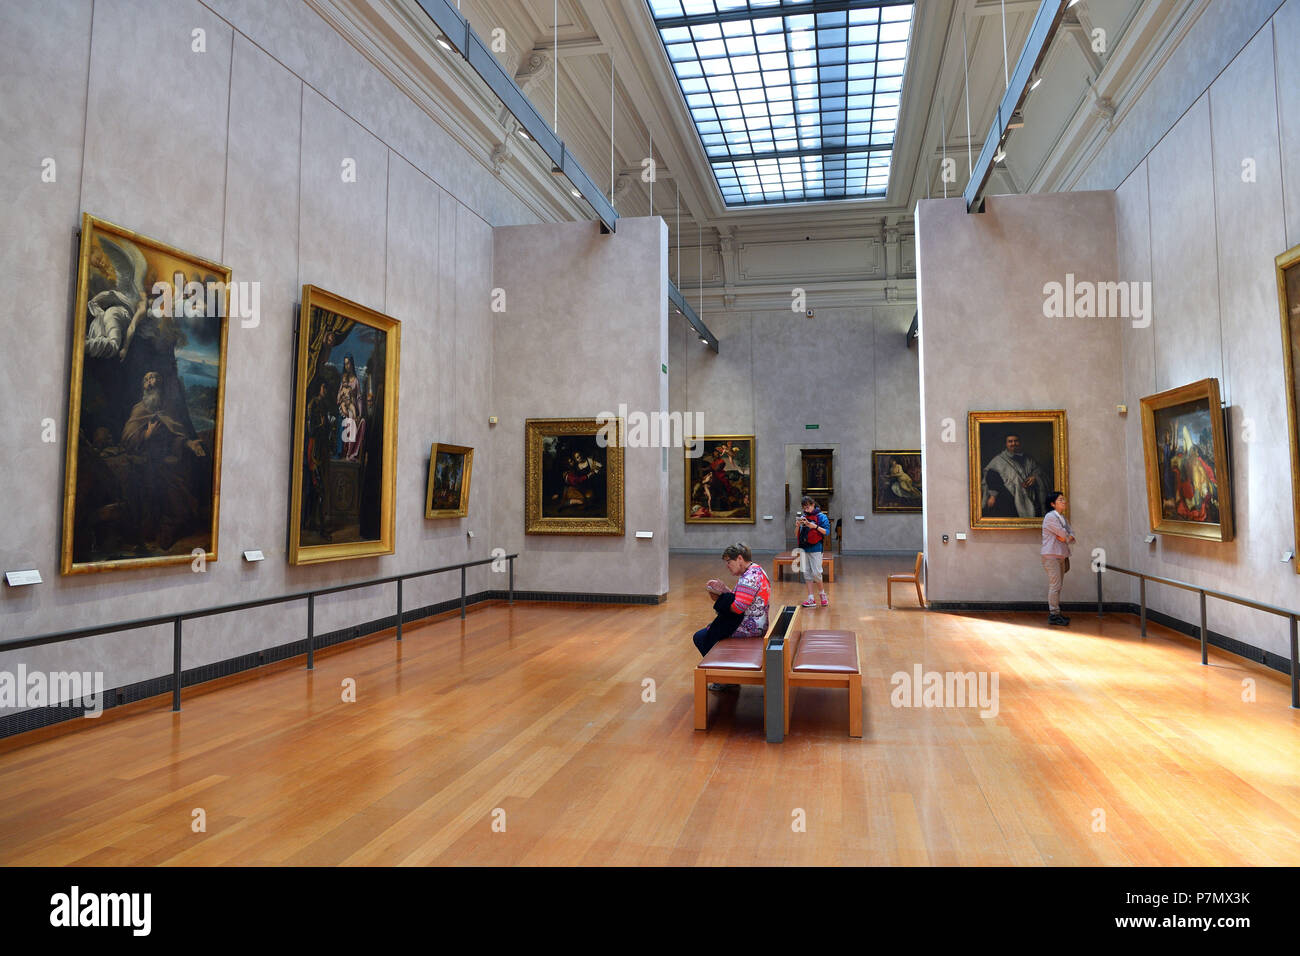 France, Rhone, Lyon, historical site listed as World Heritage by UNESCO, Palais Saint Pierre, Musee des Beaux Arts (Fine Art Museum), hall of the paintings of the XVIIth century Stock Photo